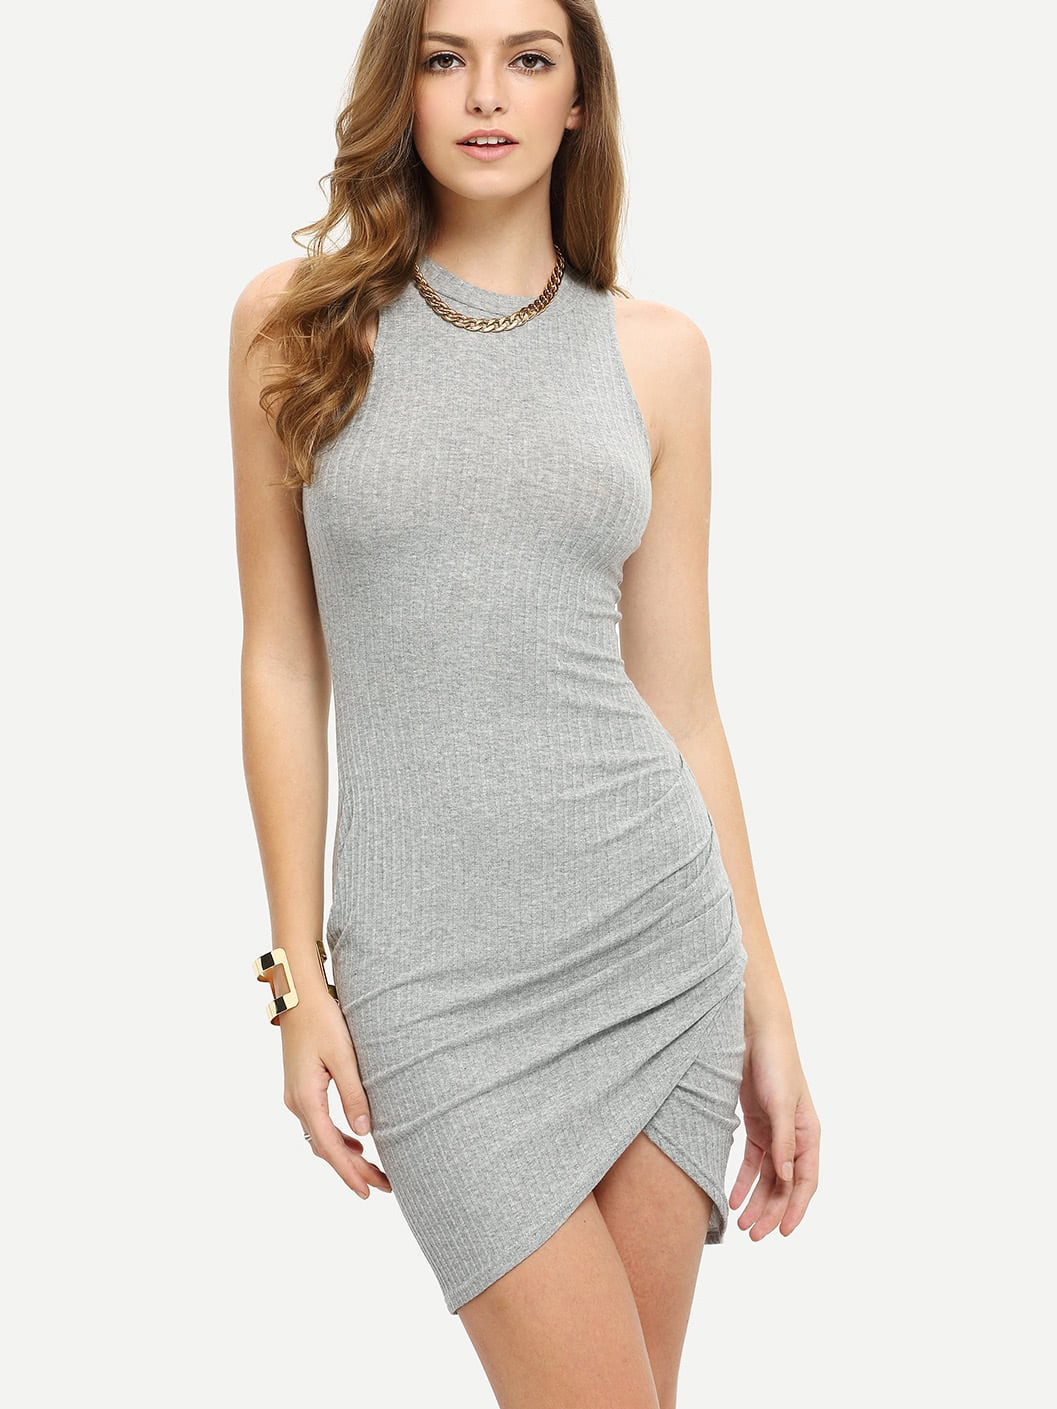 Crew Neck Sleeveless Ribbed Wrap Dress dress160311704